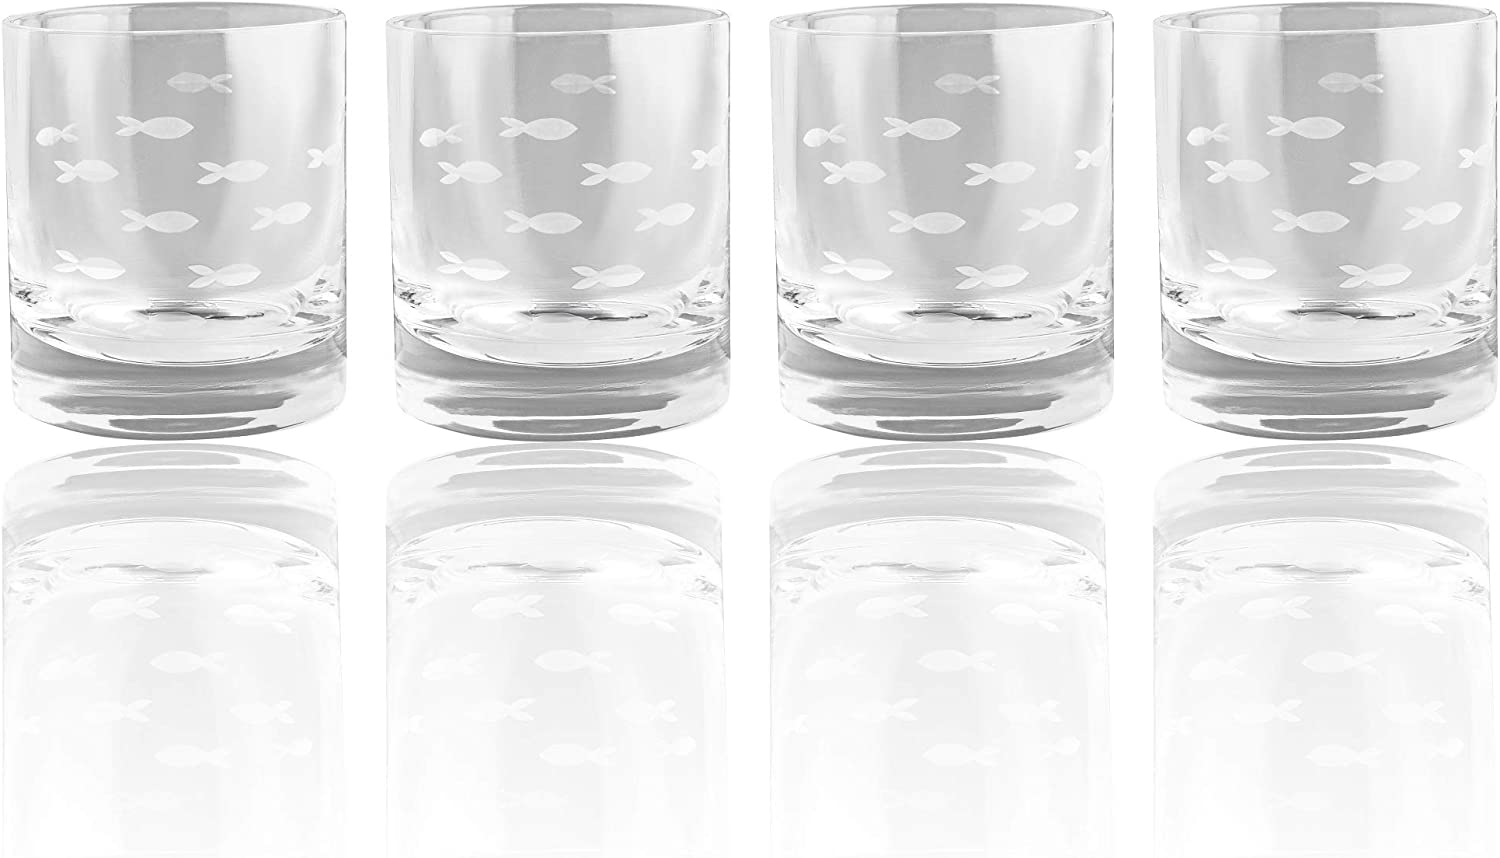 Fish Old Fashion Drinking Glasses, Fish Glasses For White and Red Wine, Water or Whiskey, by The Wine Savant, Each Glass Is Individually Sand Etched - Fish Wine Glasses